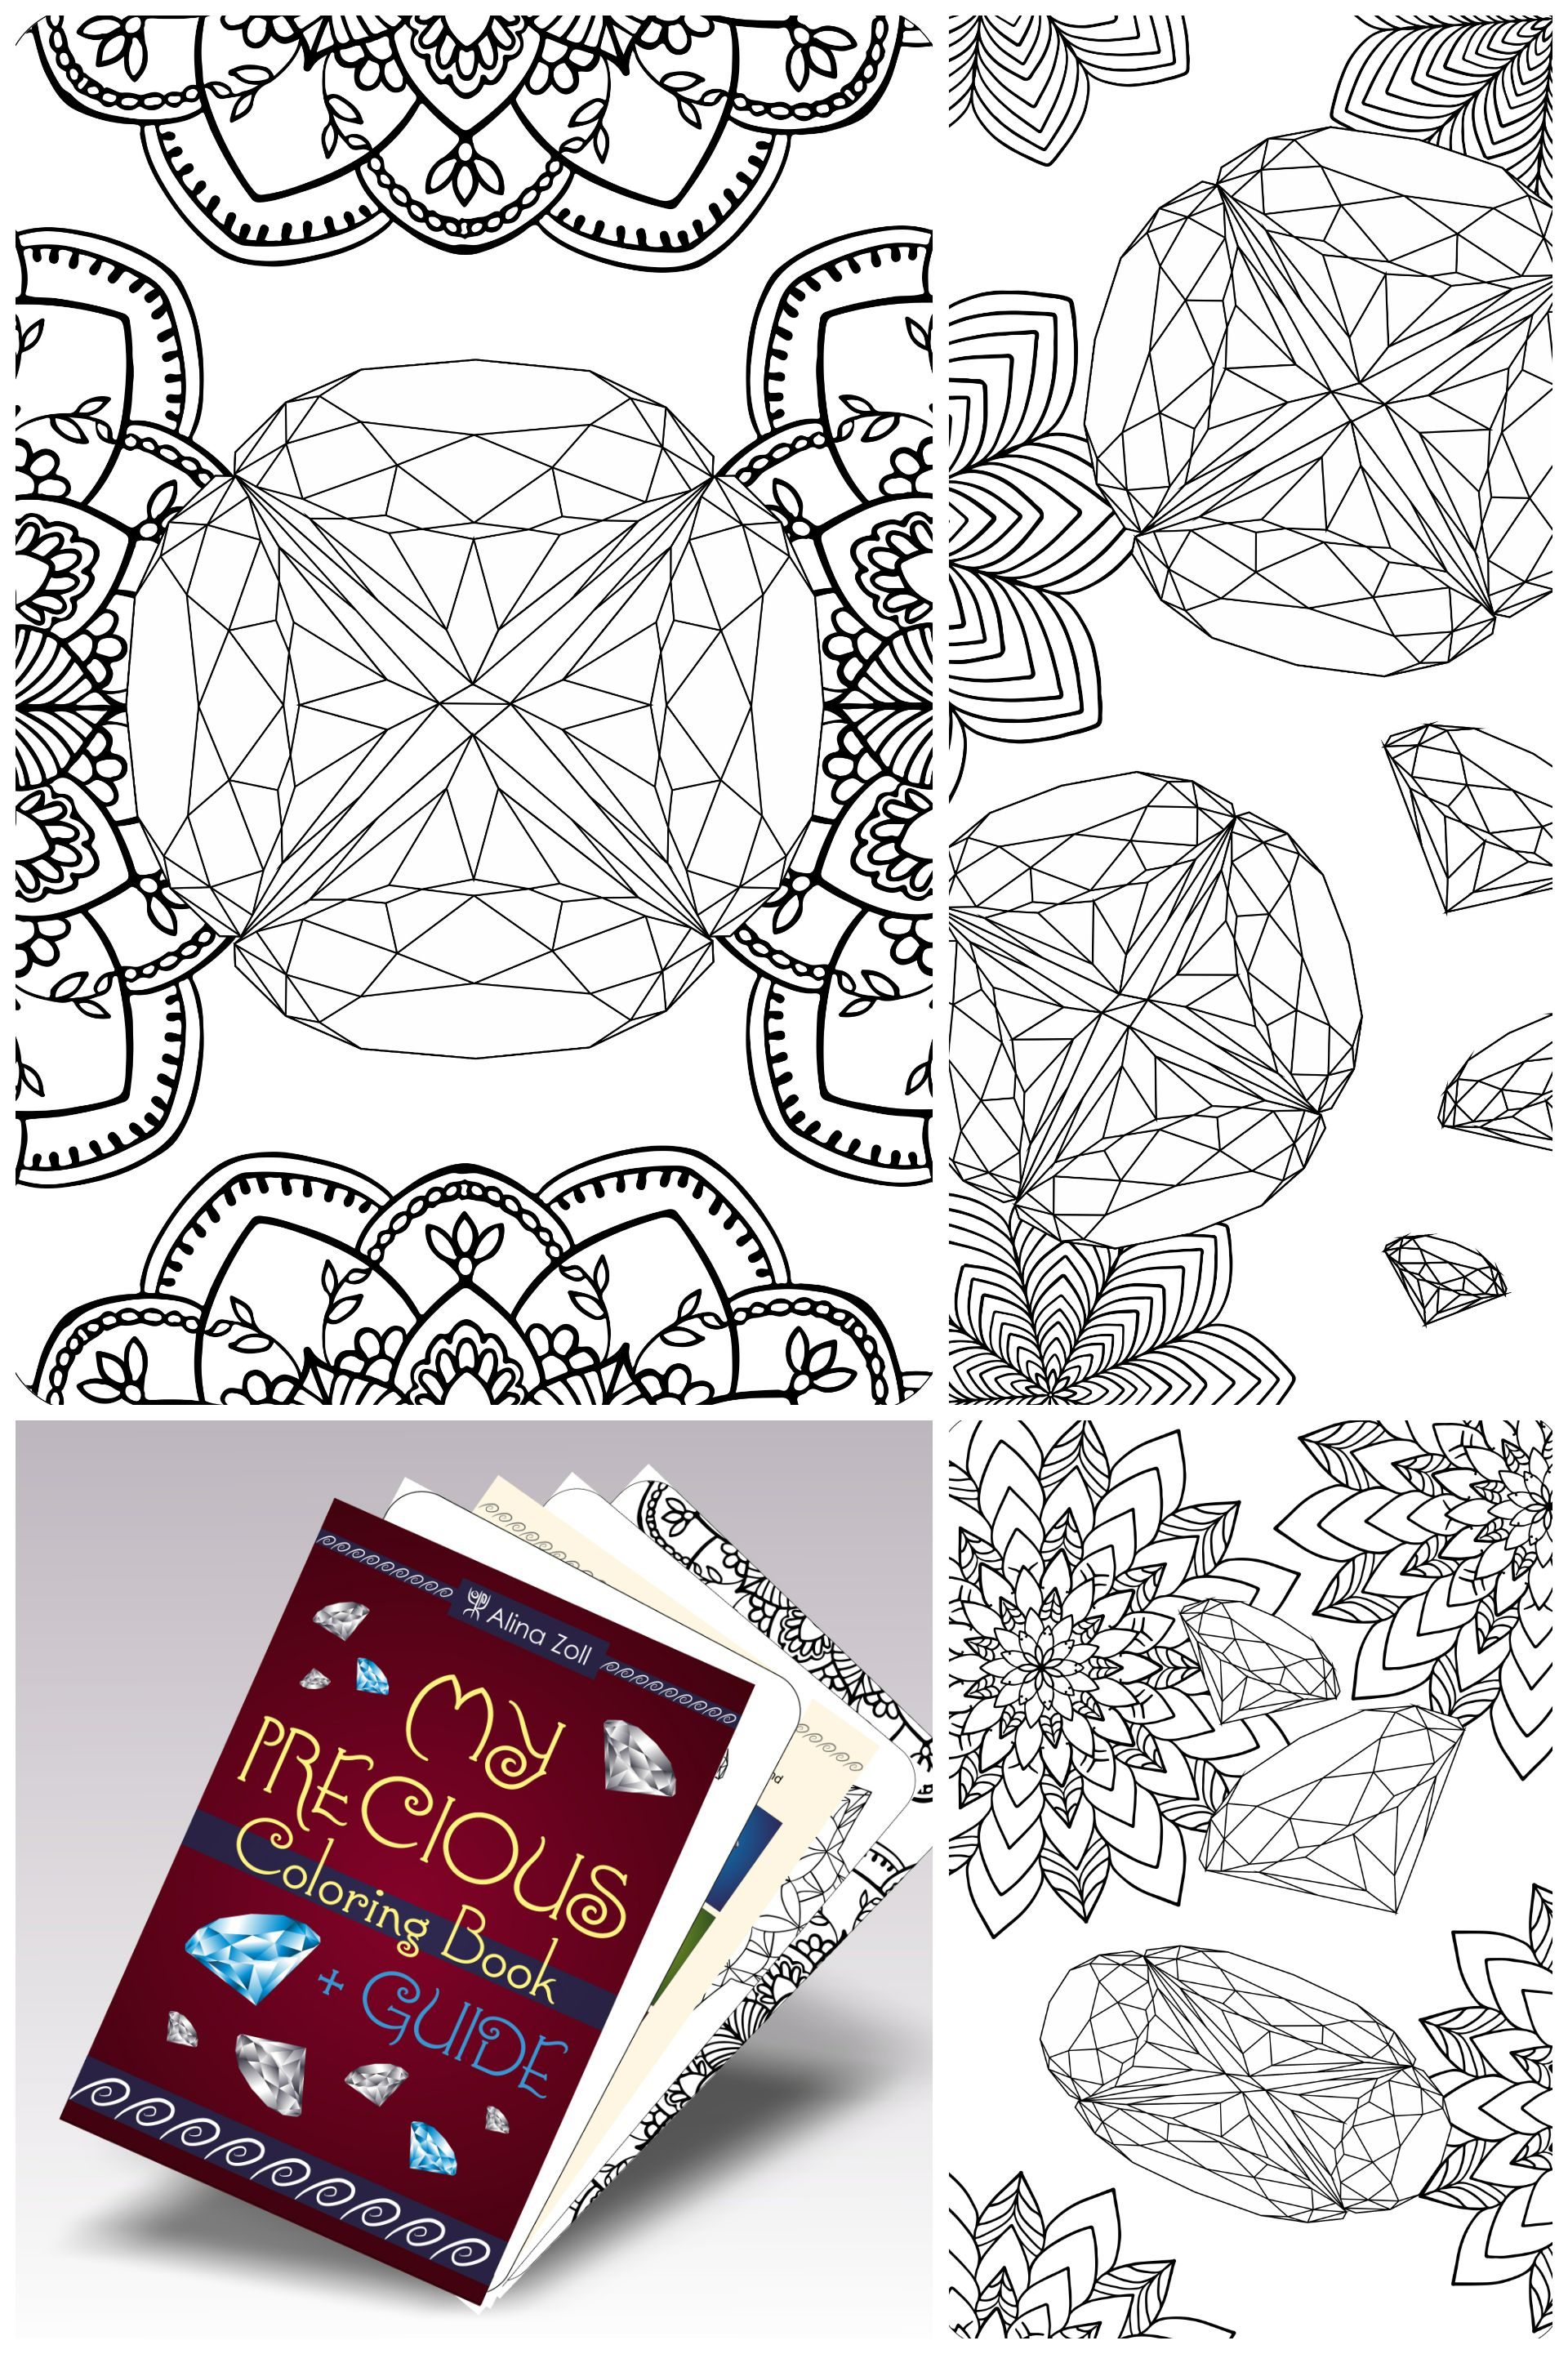 Gemstone adult coloring book download coloring pages with guide and